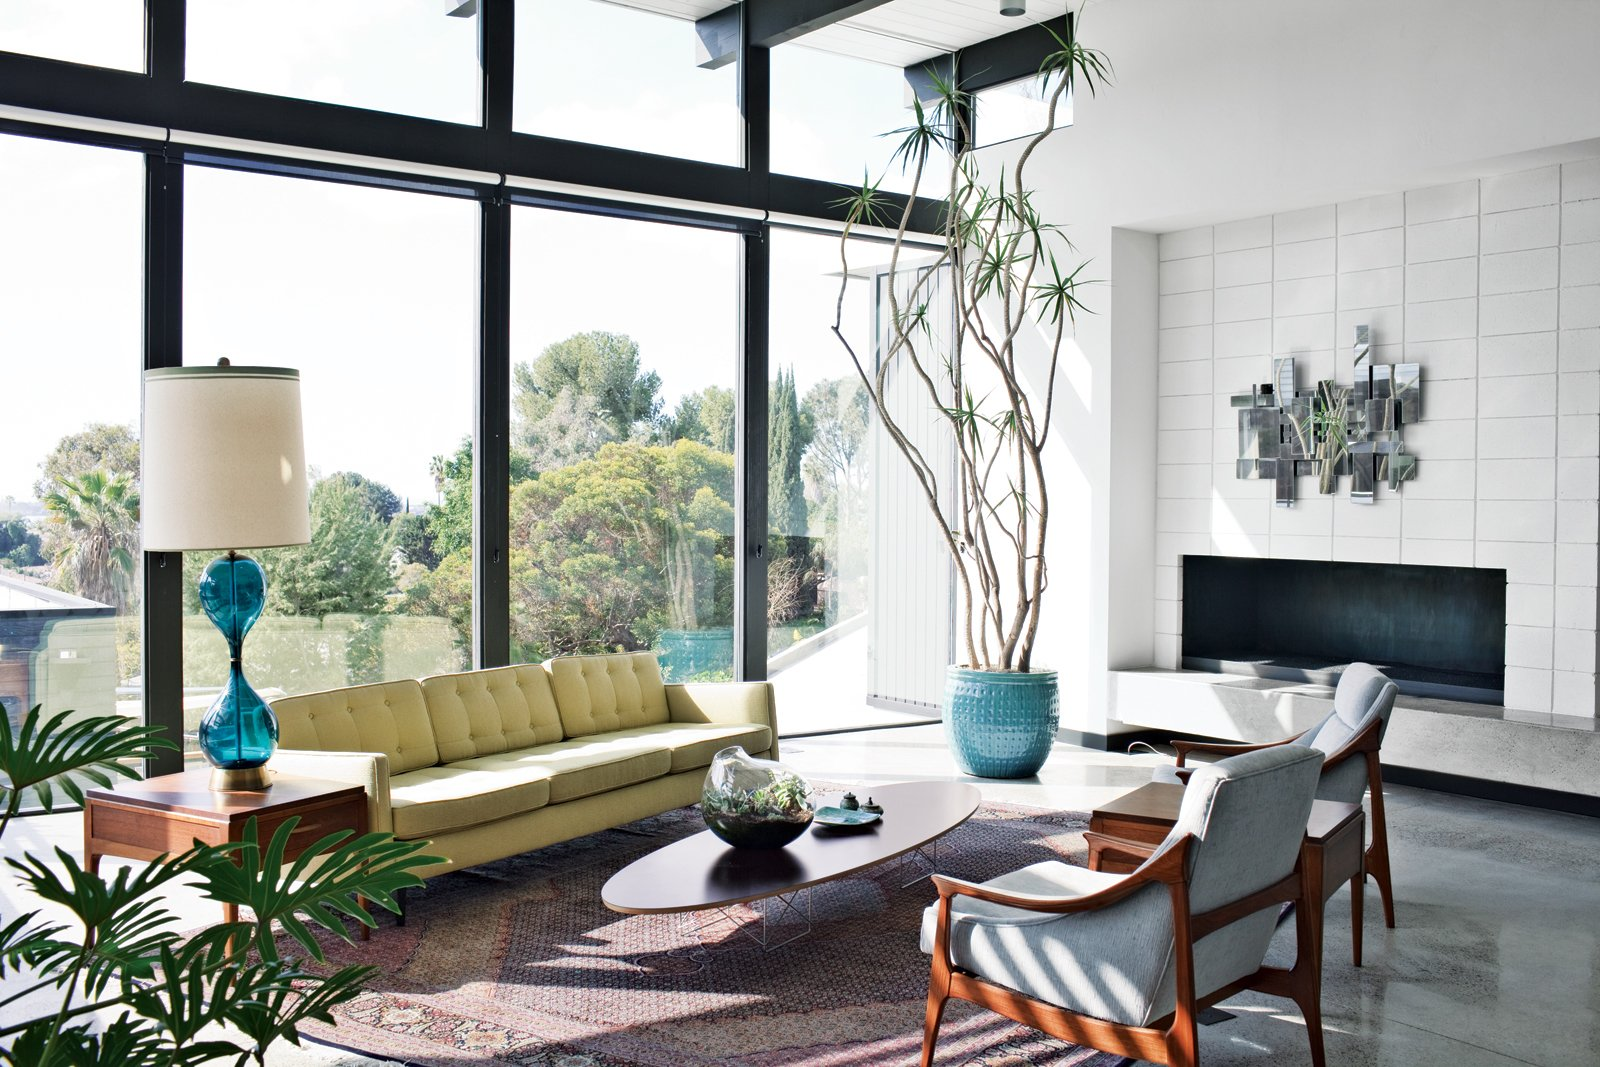 A Nelson sofa sits on a handmade Persian Mahi rug in the living room.  Homes for the Whole Family  by Matthew Keeshin from The First LEED Gold-Certified Family Home in San Diego